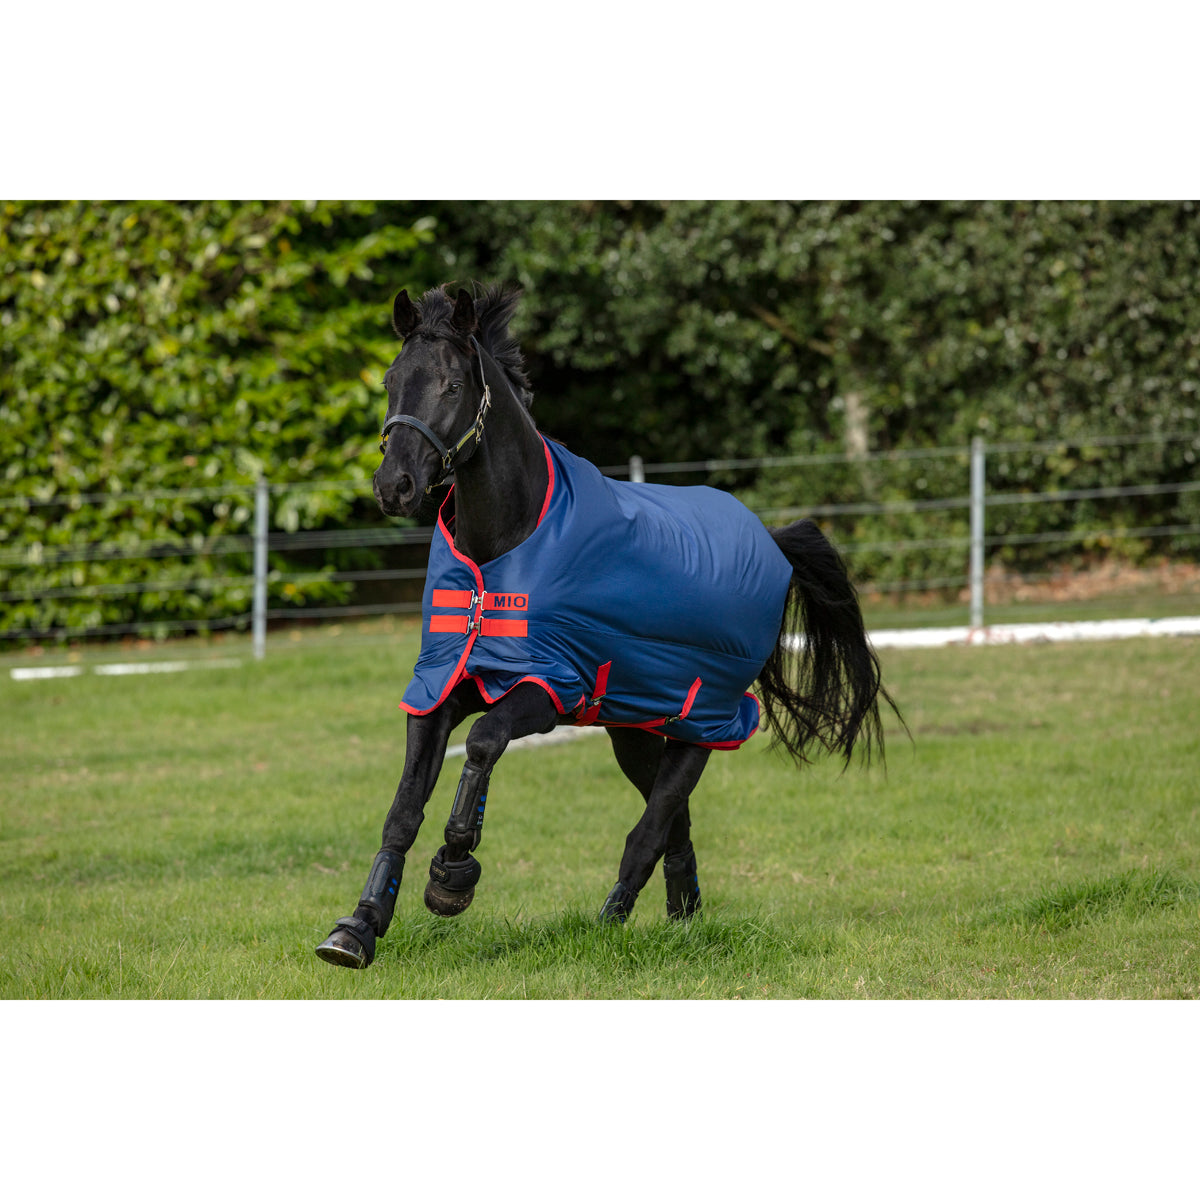 Horseware Mio Turnout 200g Medium